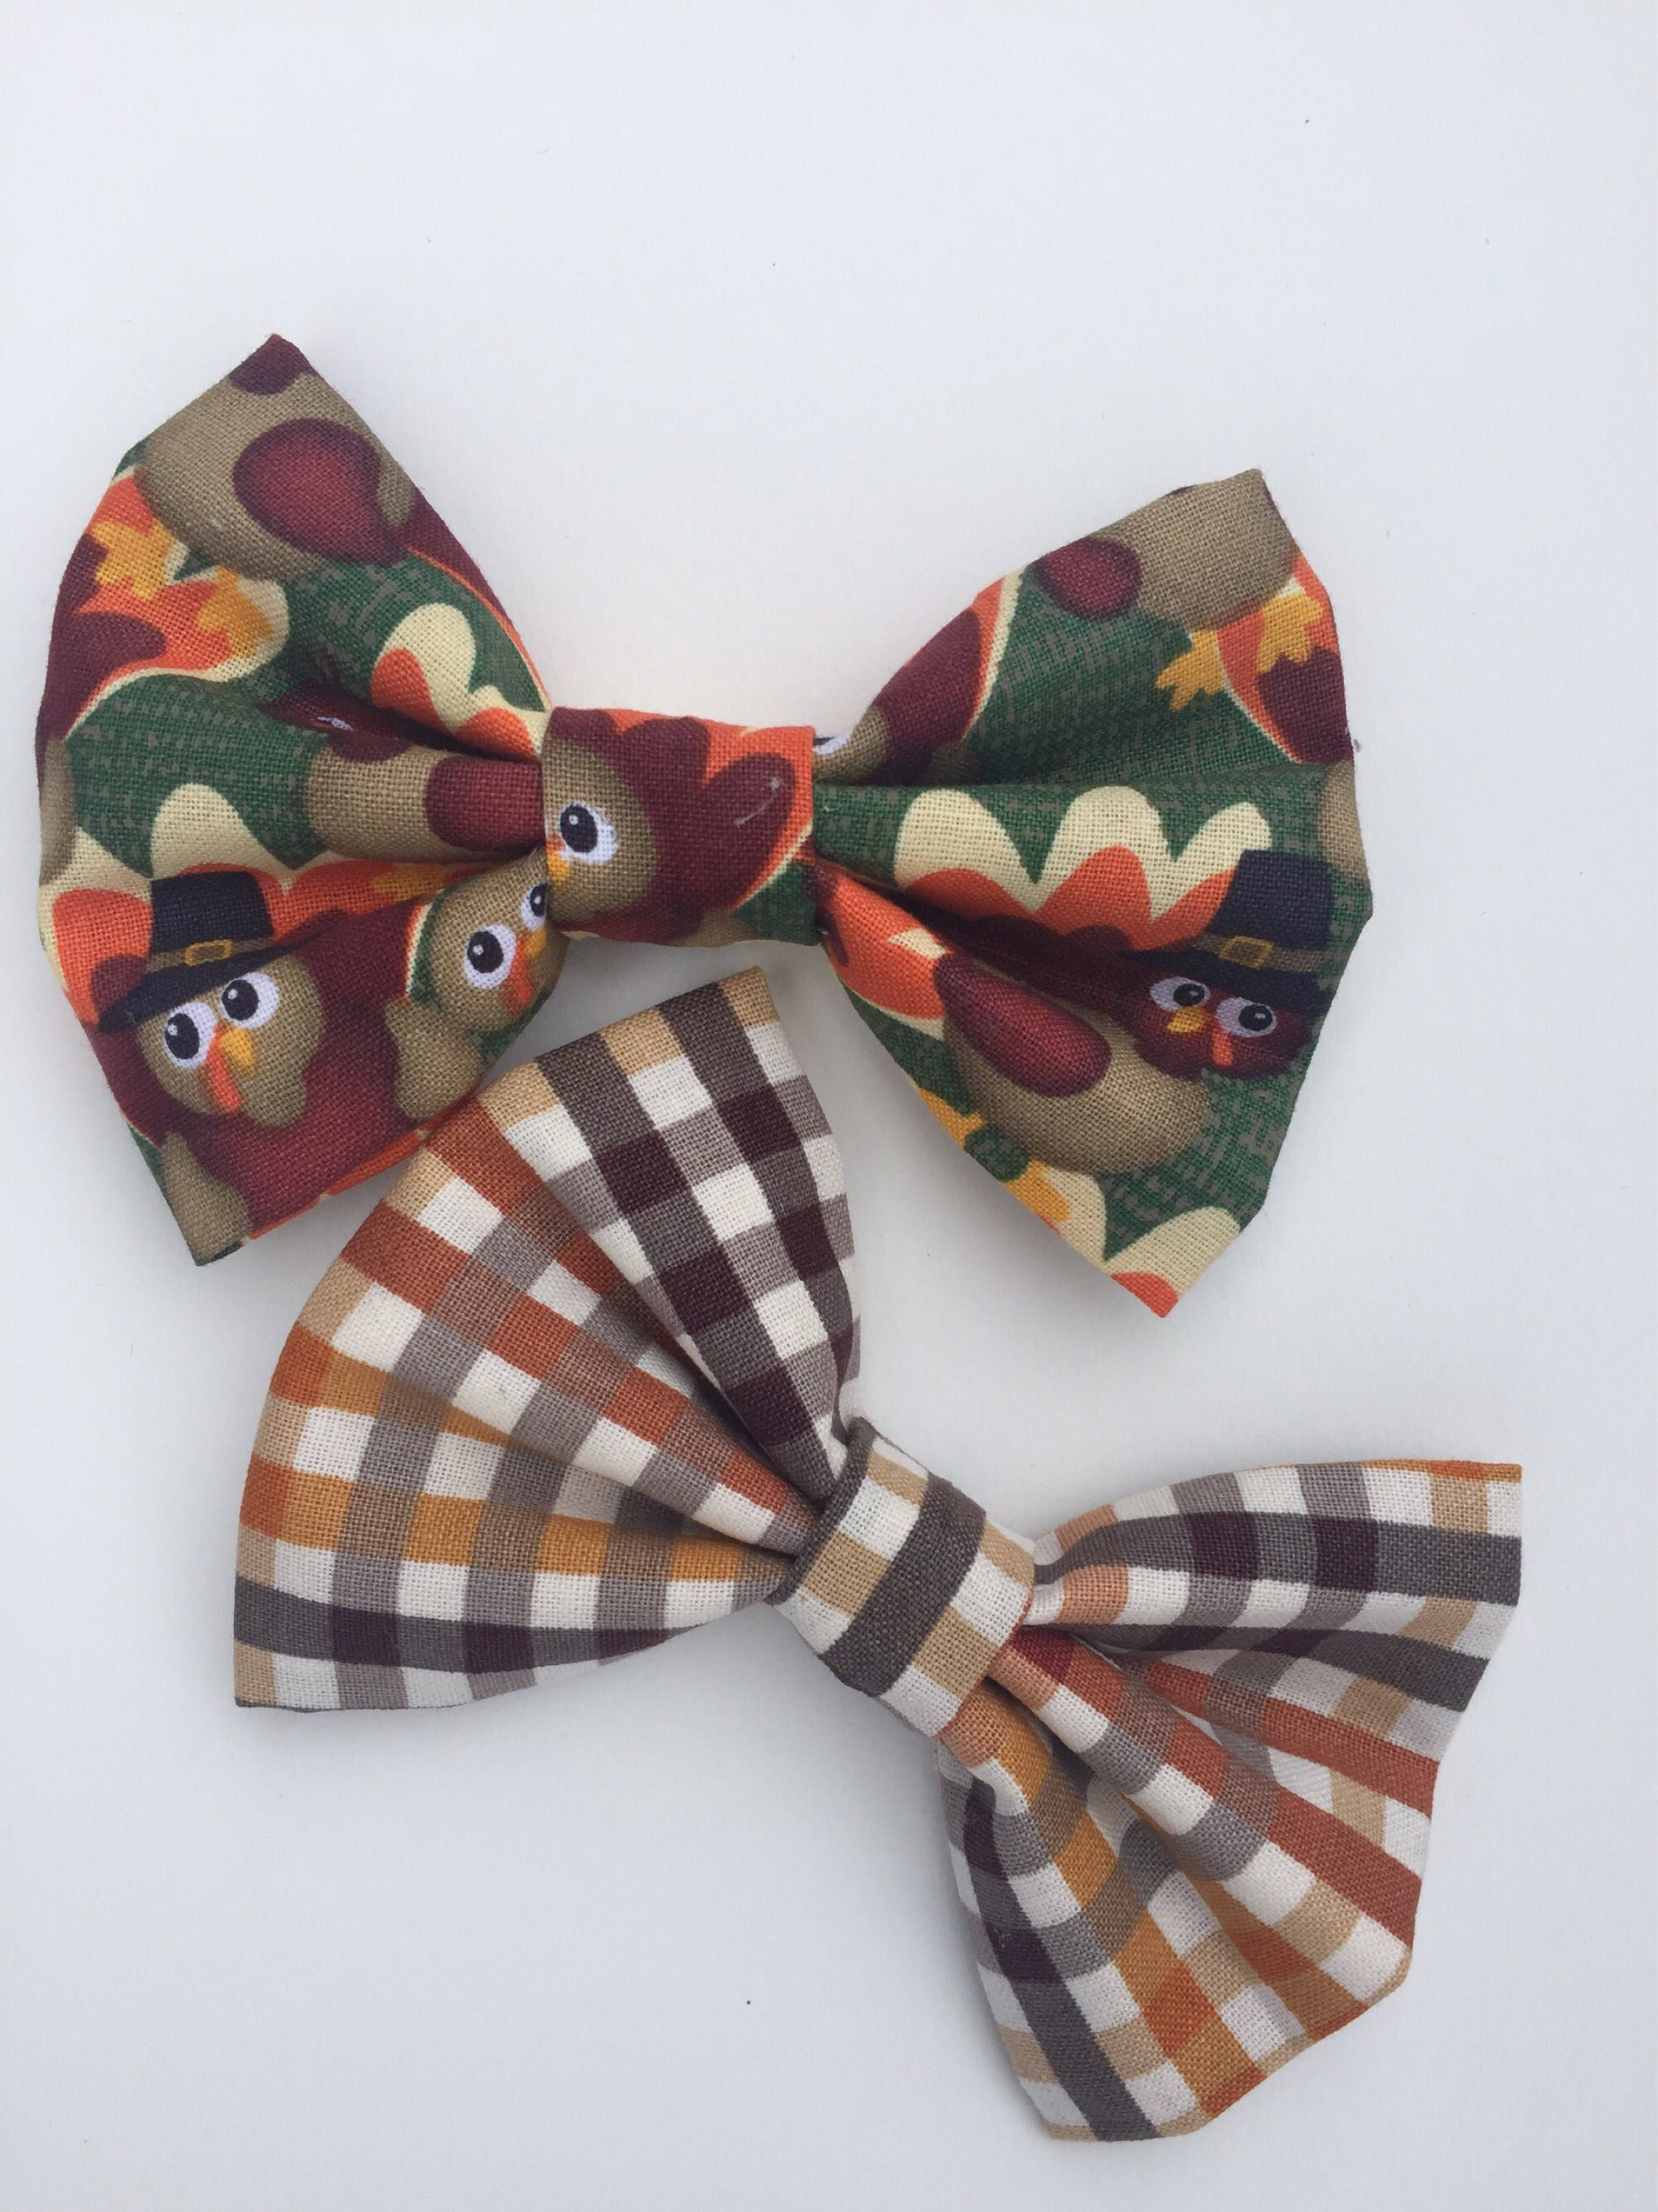 Dog Bow Ties Fall Dog Bows Thanksgiving Dog Bow Ties Cat Bow Ties Turkey Fall Plaid Bow Ties Large Dog Pet Photo Props By Polkadotthreads On Etsy